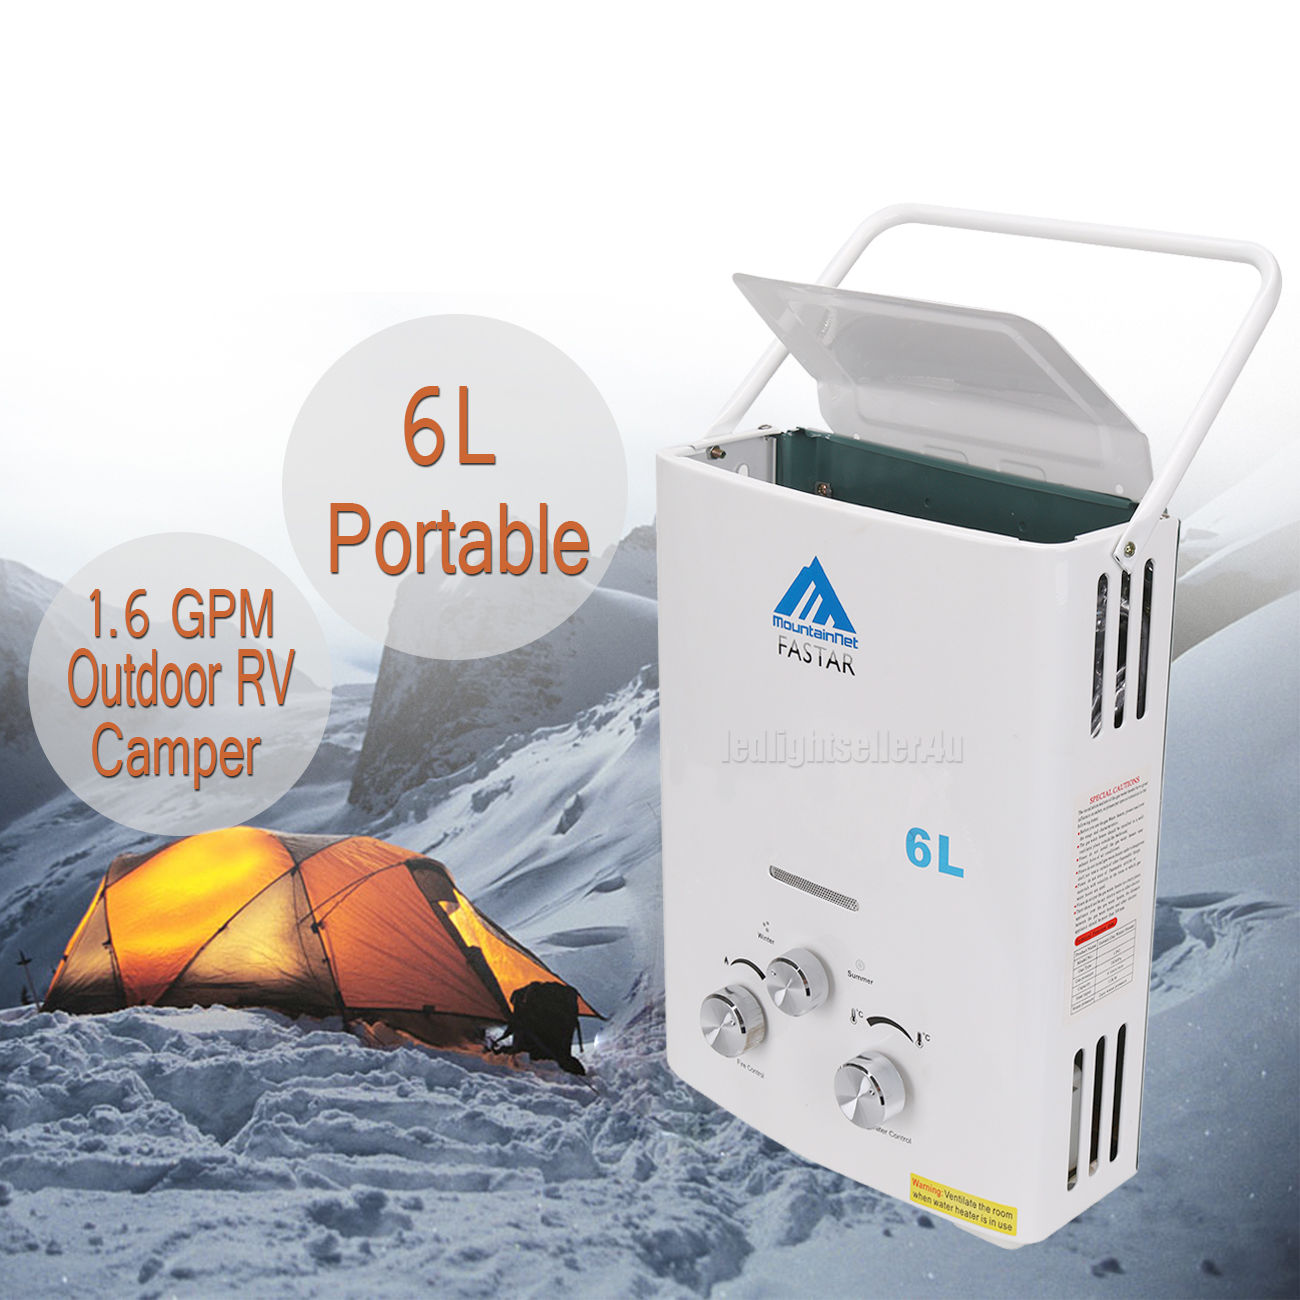 2018 HOTSALES Tankless Hot Water Heater Propane Gas LPG 1 6 GPM Outdoor RV Camper 6L